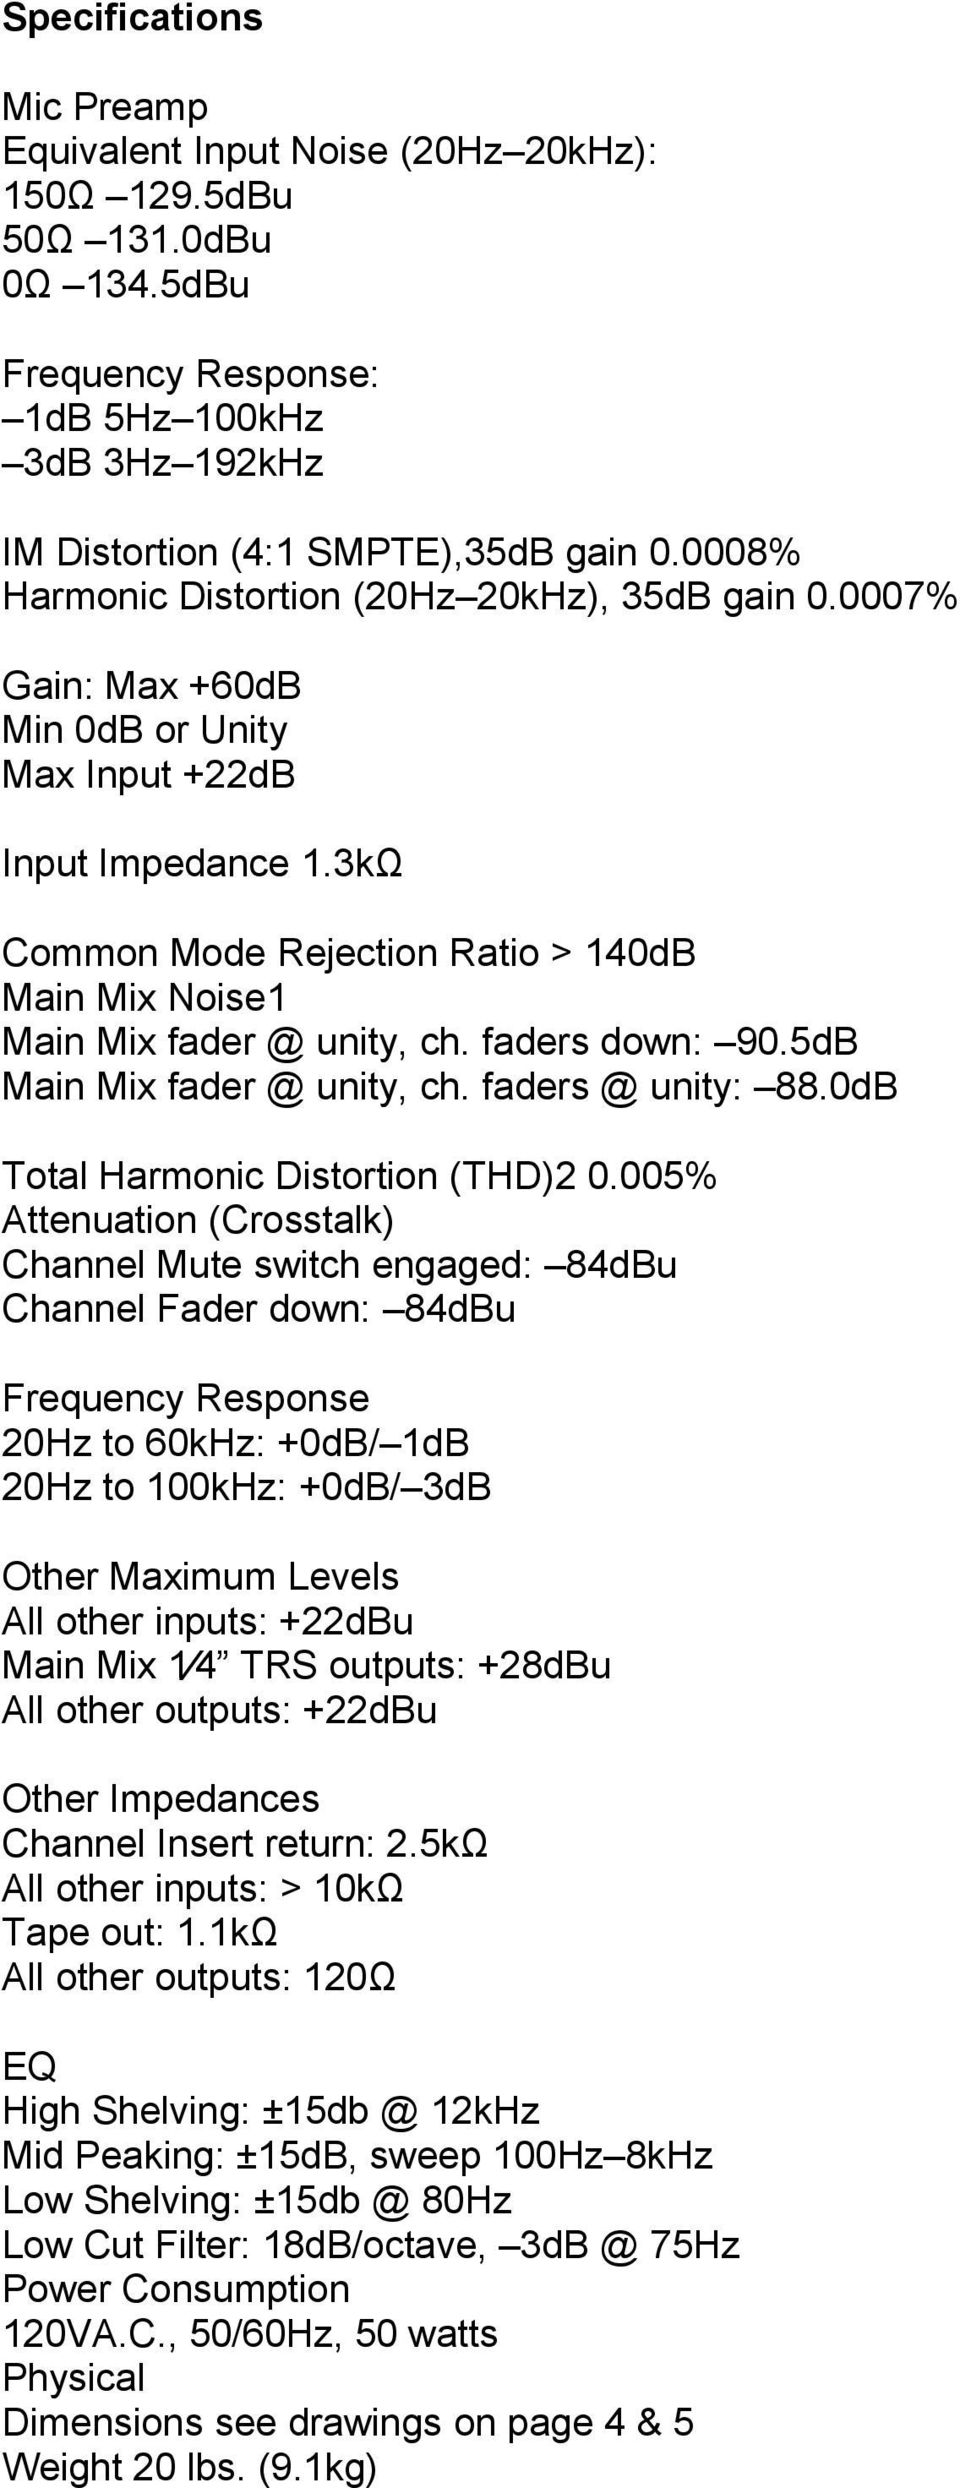 3kΩ Common Mode Rejection Ratio > 140dB Main Mix Noise1 Main Mix fader @ unity, ch. faders down: 90.5dB Main Mix fader @ unity, ch. faders @ unity: 88.0dB Total Harmonic Distortion (THD)2 0.